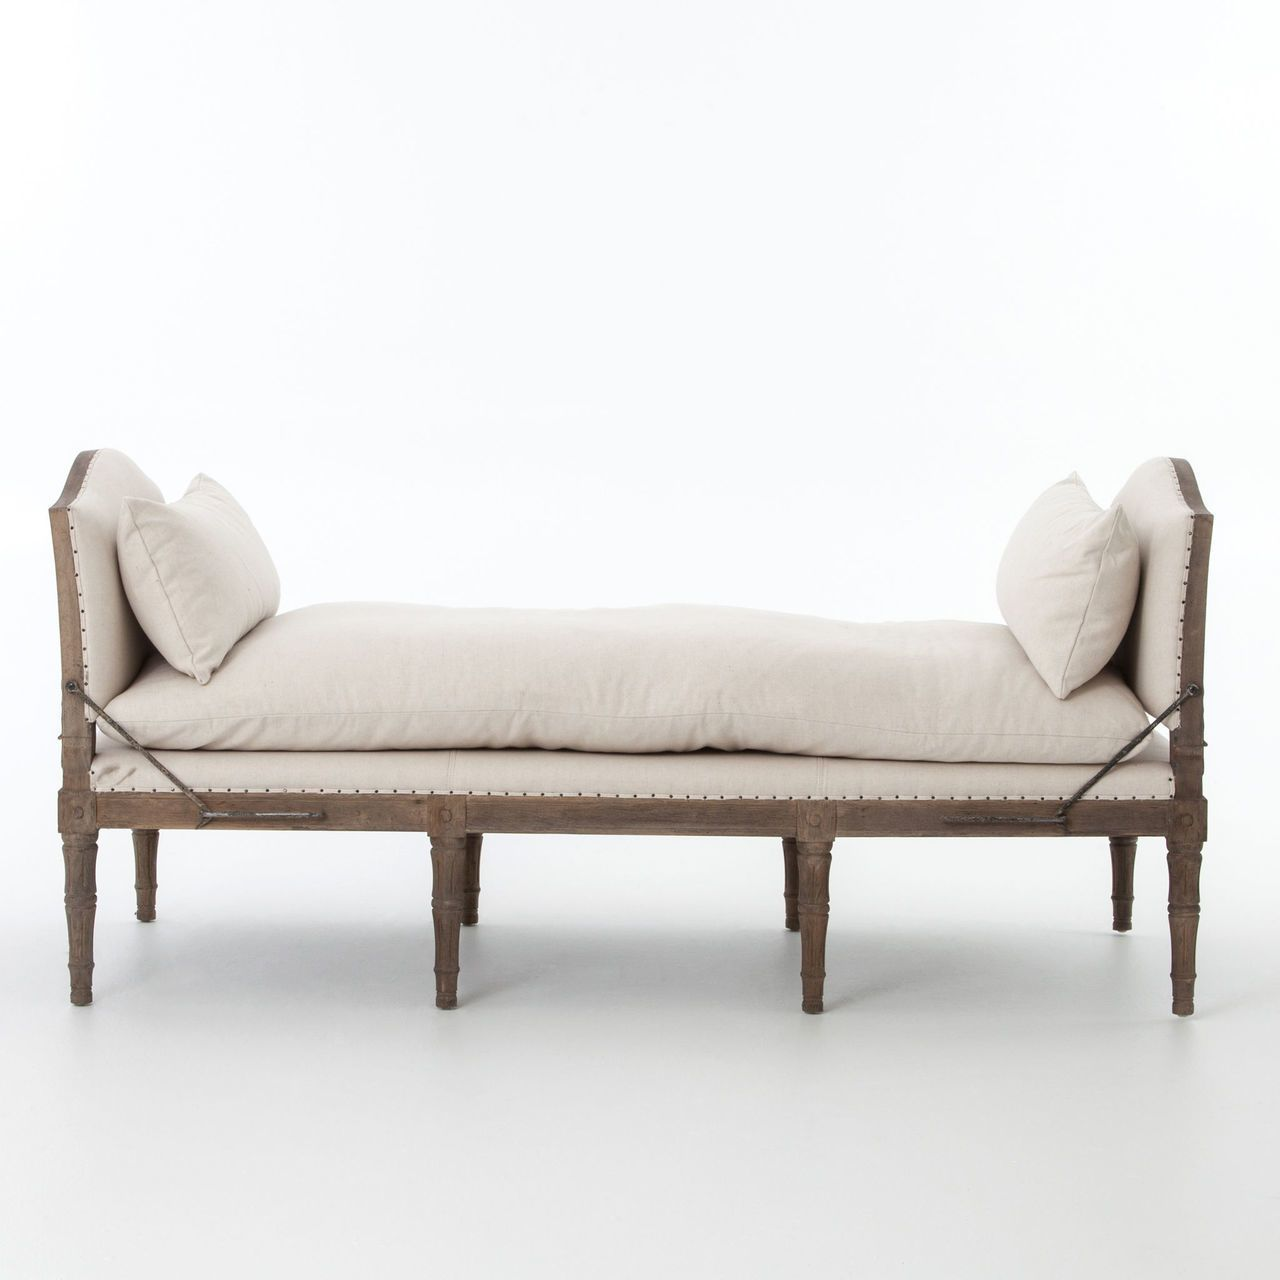 Fabulous Allison French Oak Upholstered Chaise Bed End Bench Andrewgaddart Wooden Chair Designs For Living Room Andrewgaddartcom